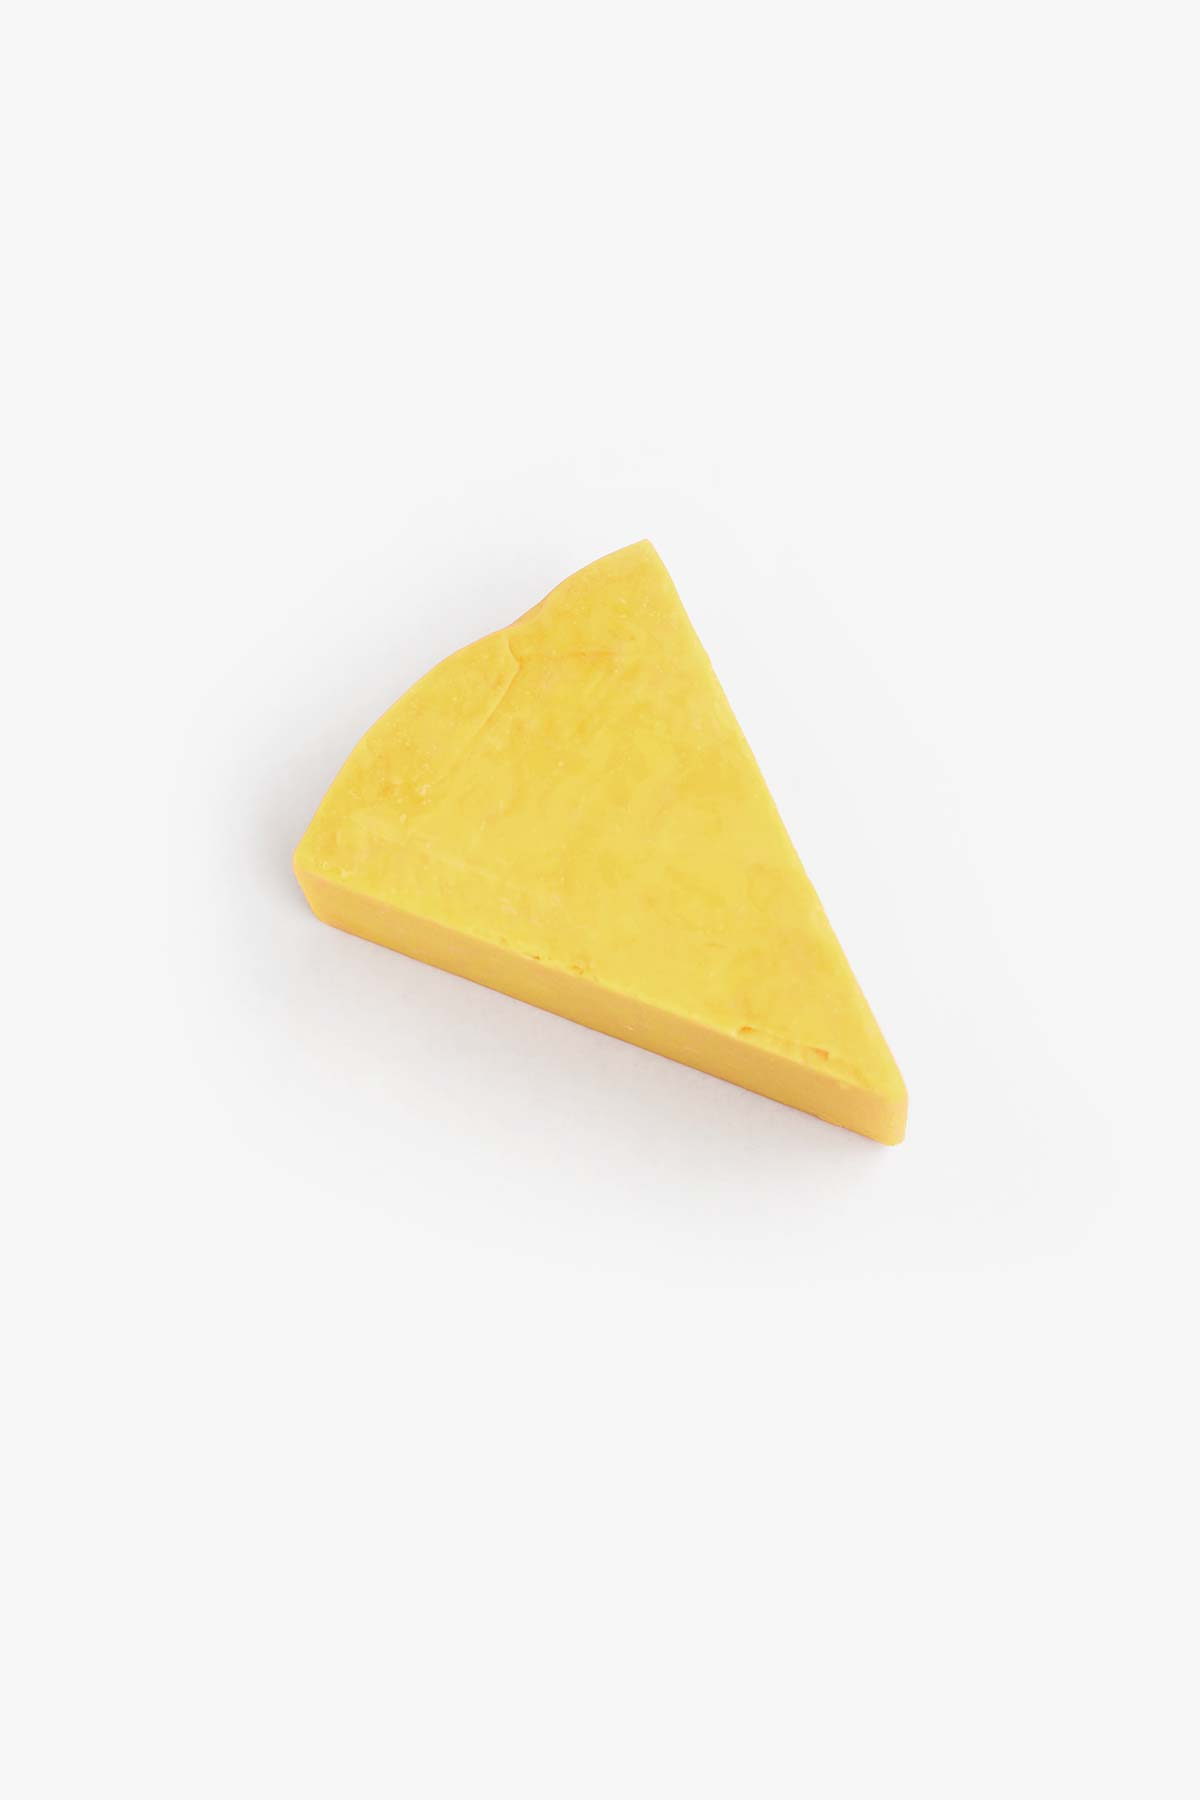 Keto Cheese, a guide to keto foods for low carb. keto, keto ingredients, keto foods, keto dairy, ketogenic diet, ketogenic dairy, keto shopping list, low carb, low carb foods, low carb dairy, lchf, lchf foods, lchf dairy